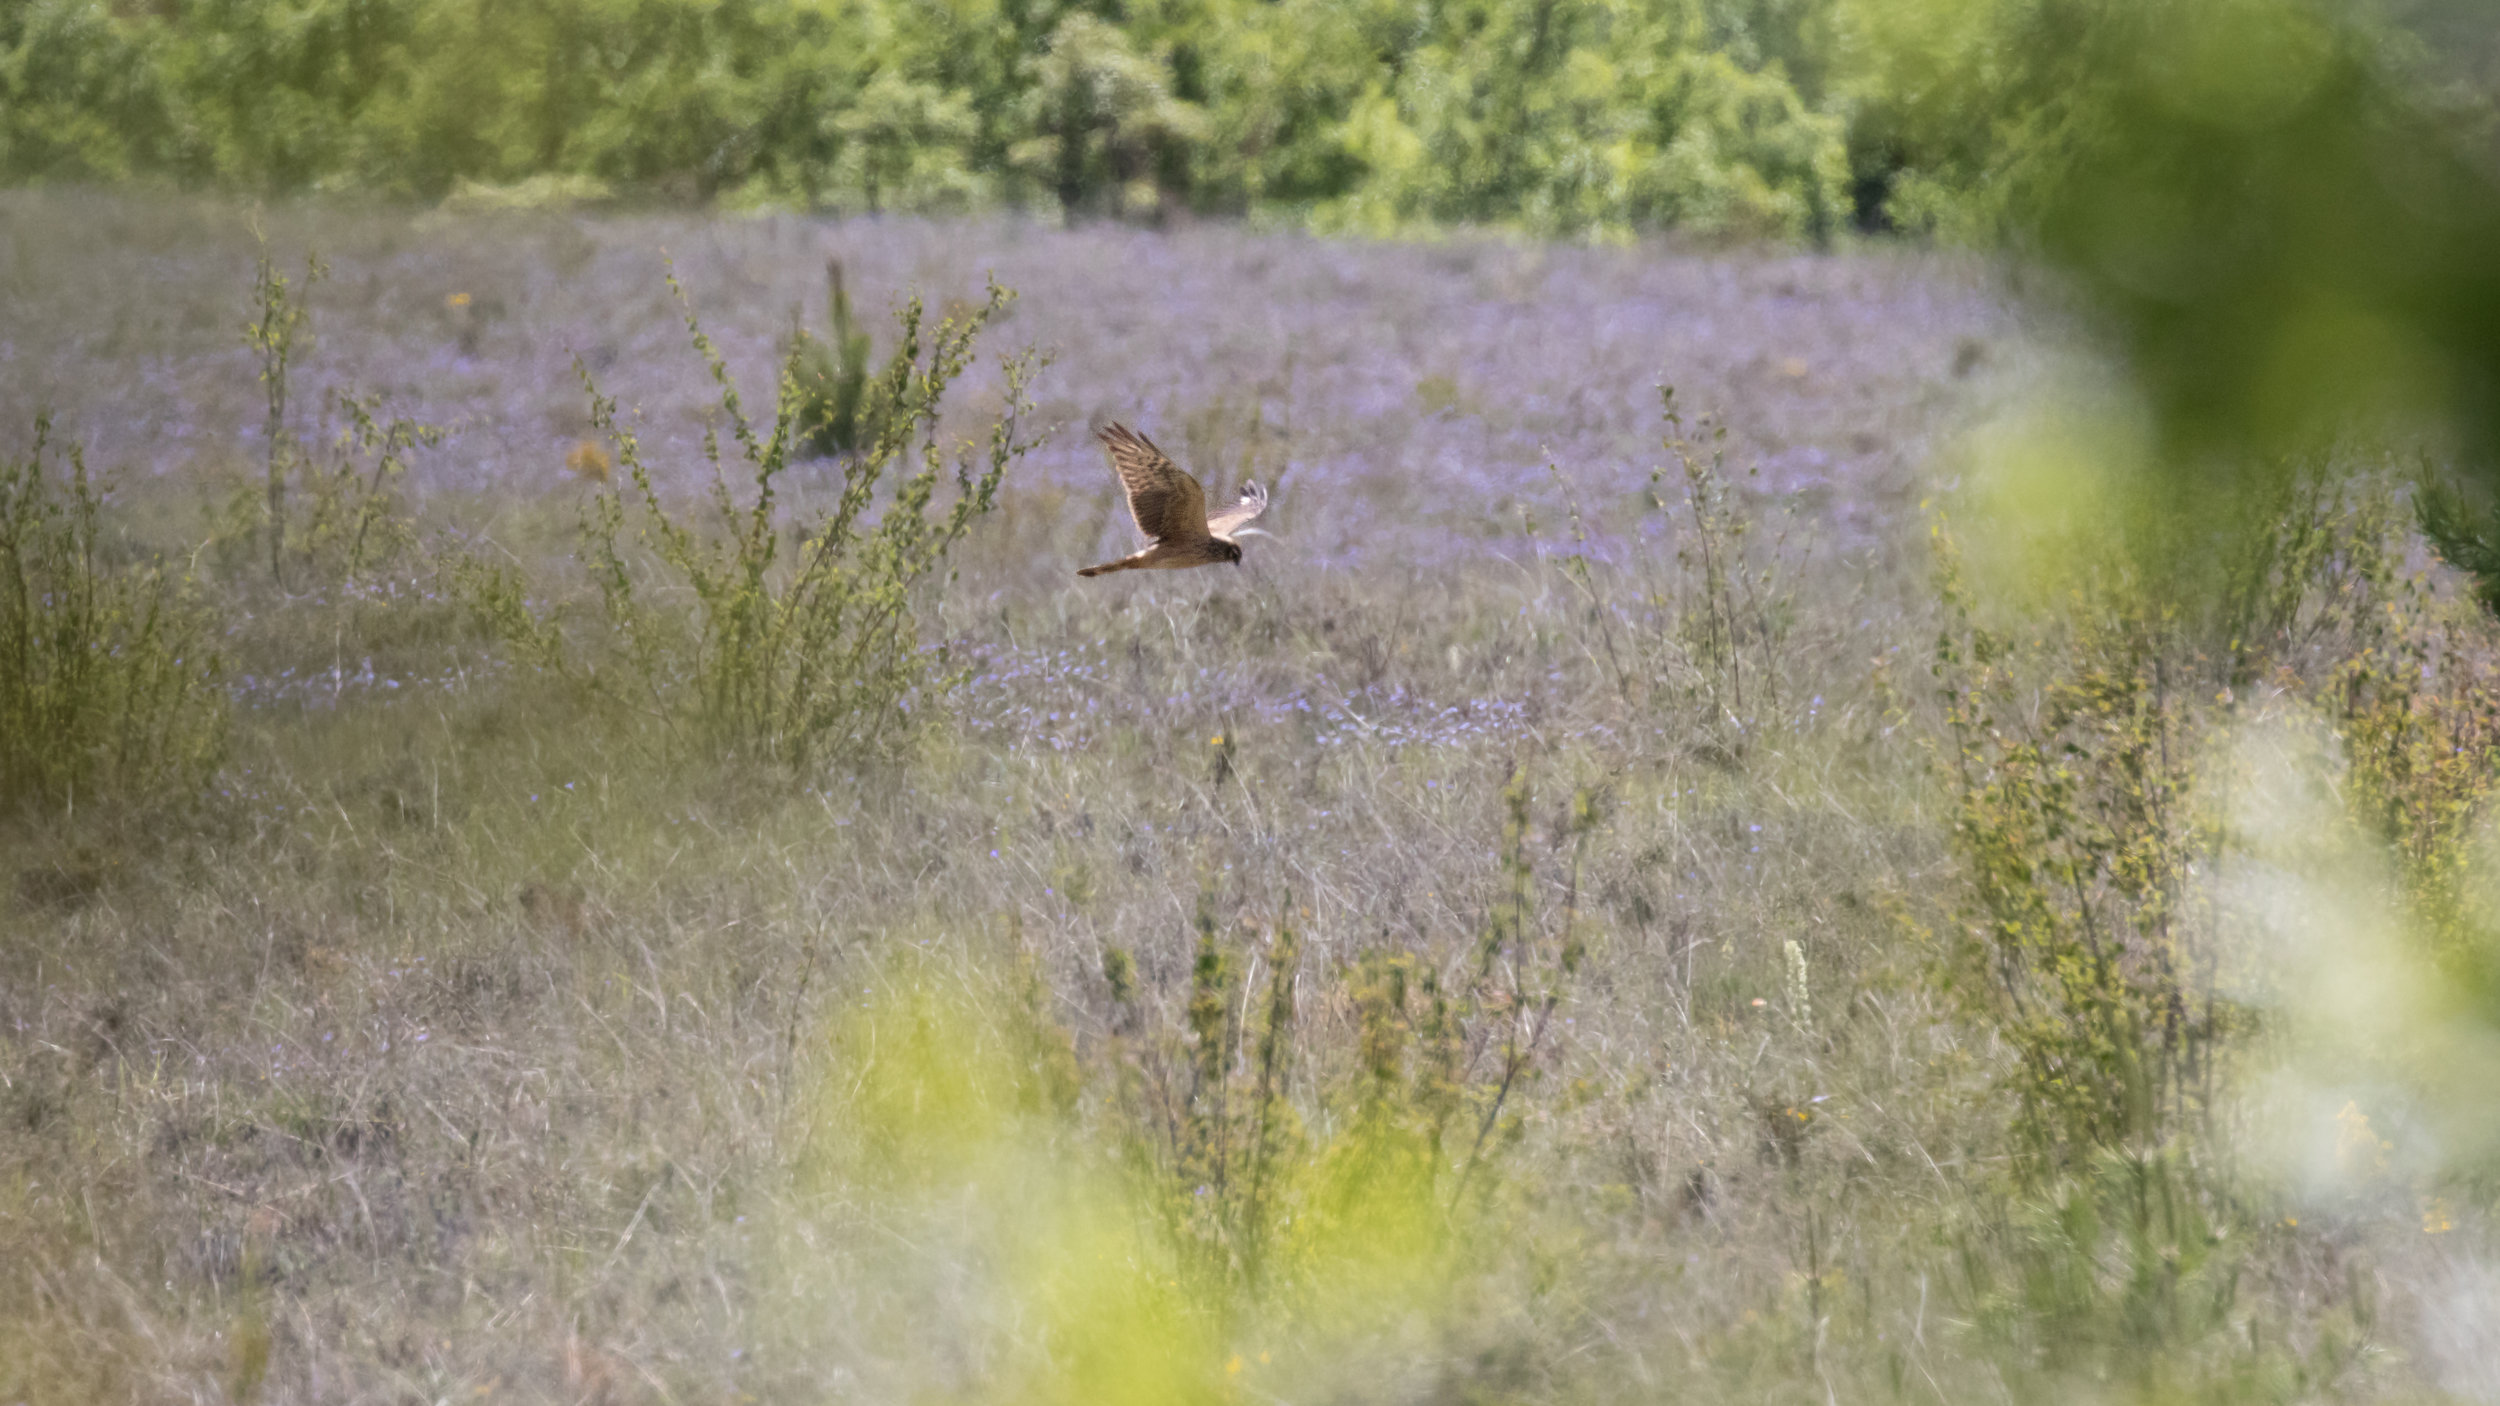 Montagu's Harrier (Circus pygargus) in France. May 2015. Not baited. Not called in.